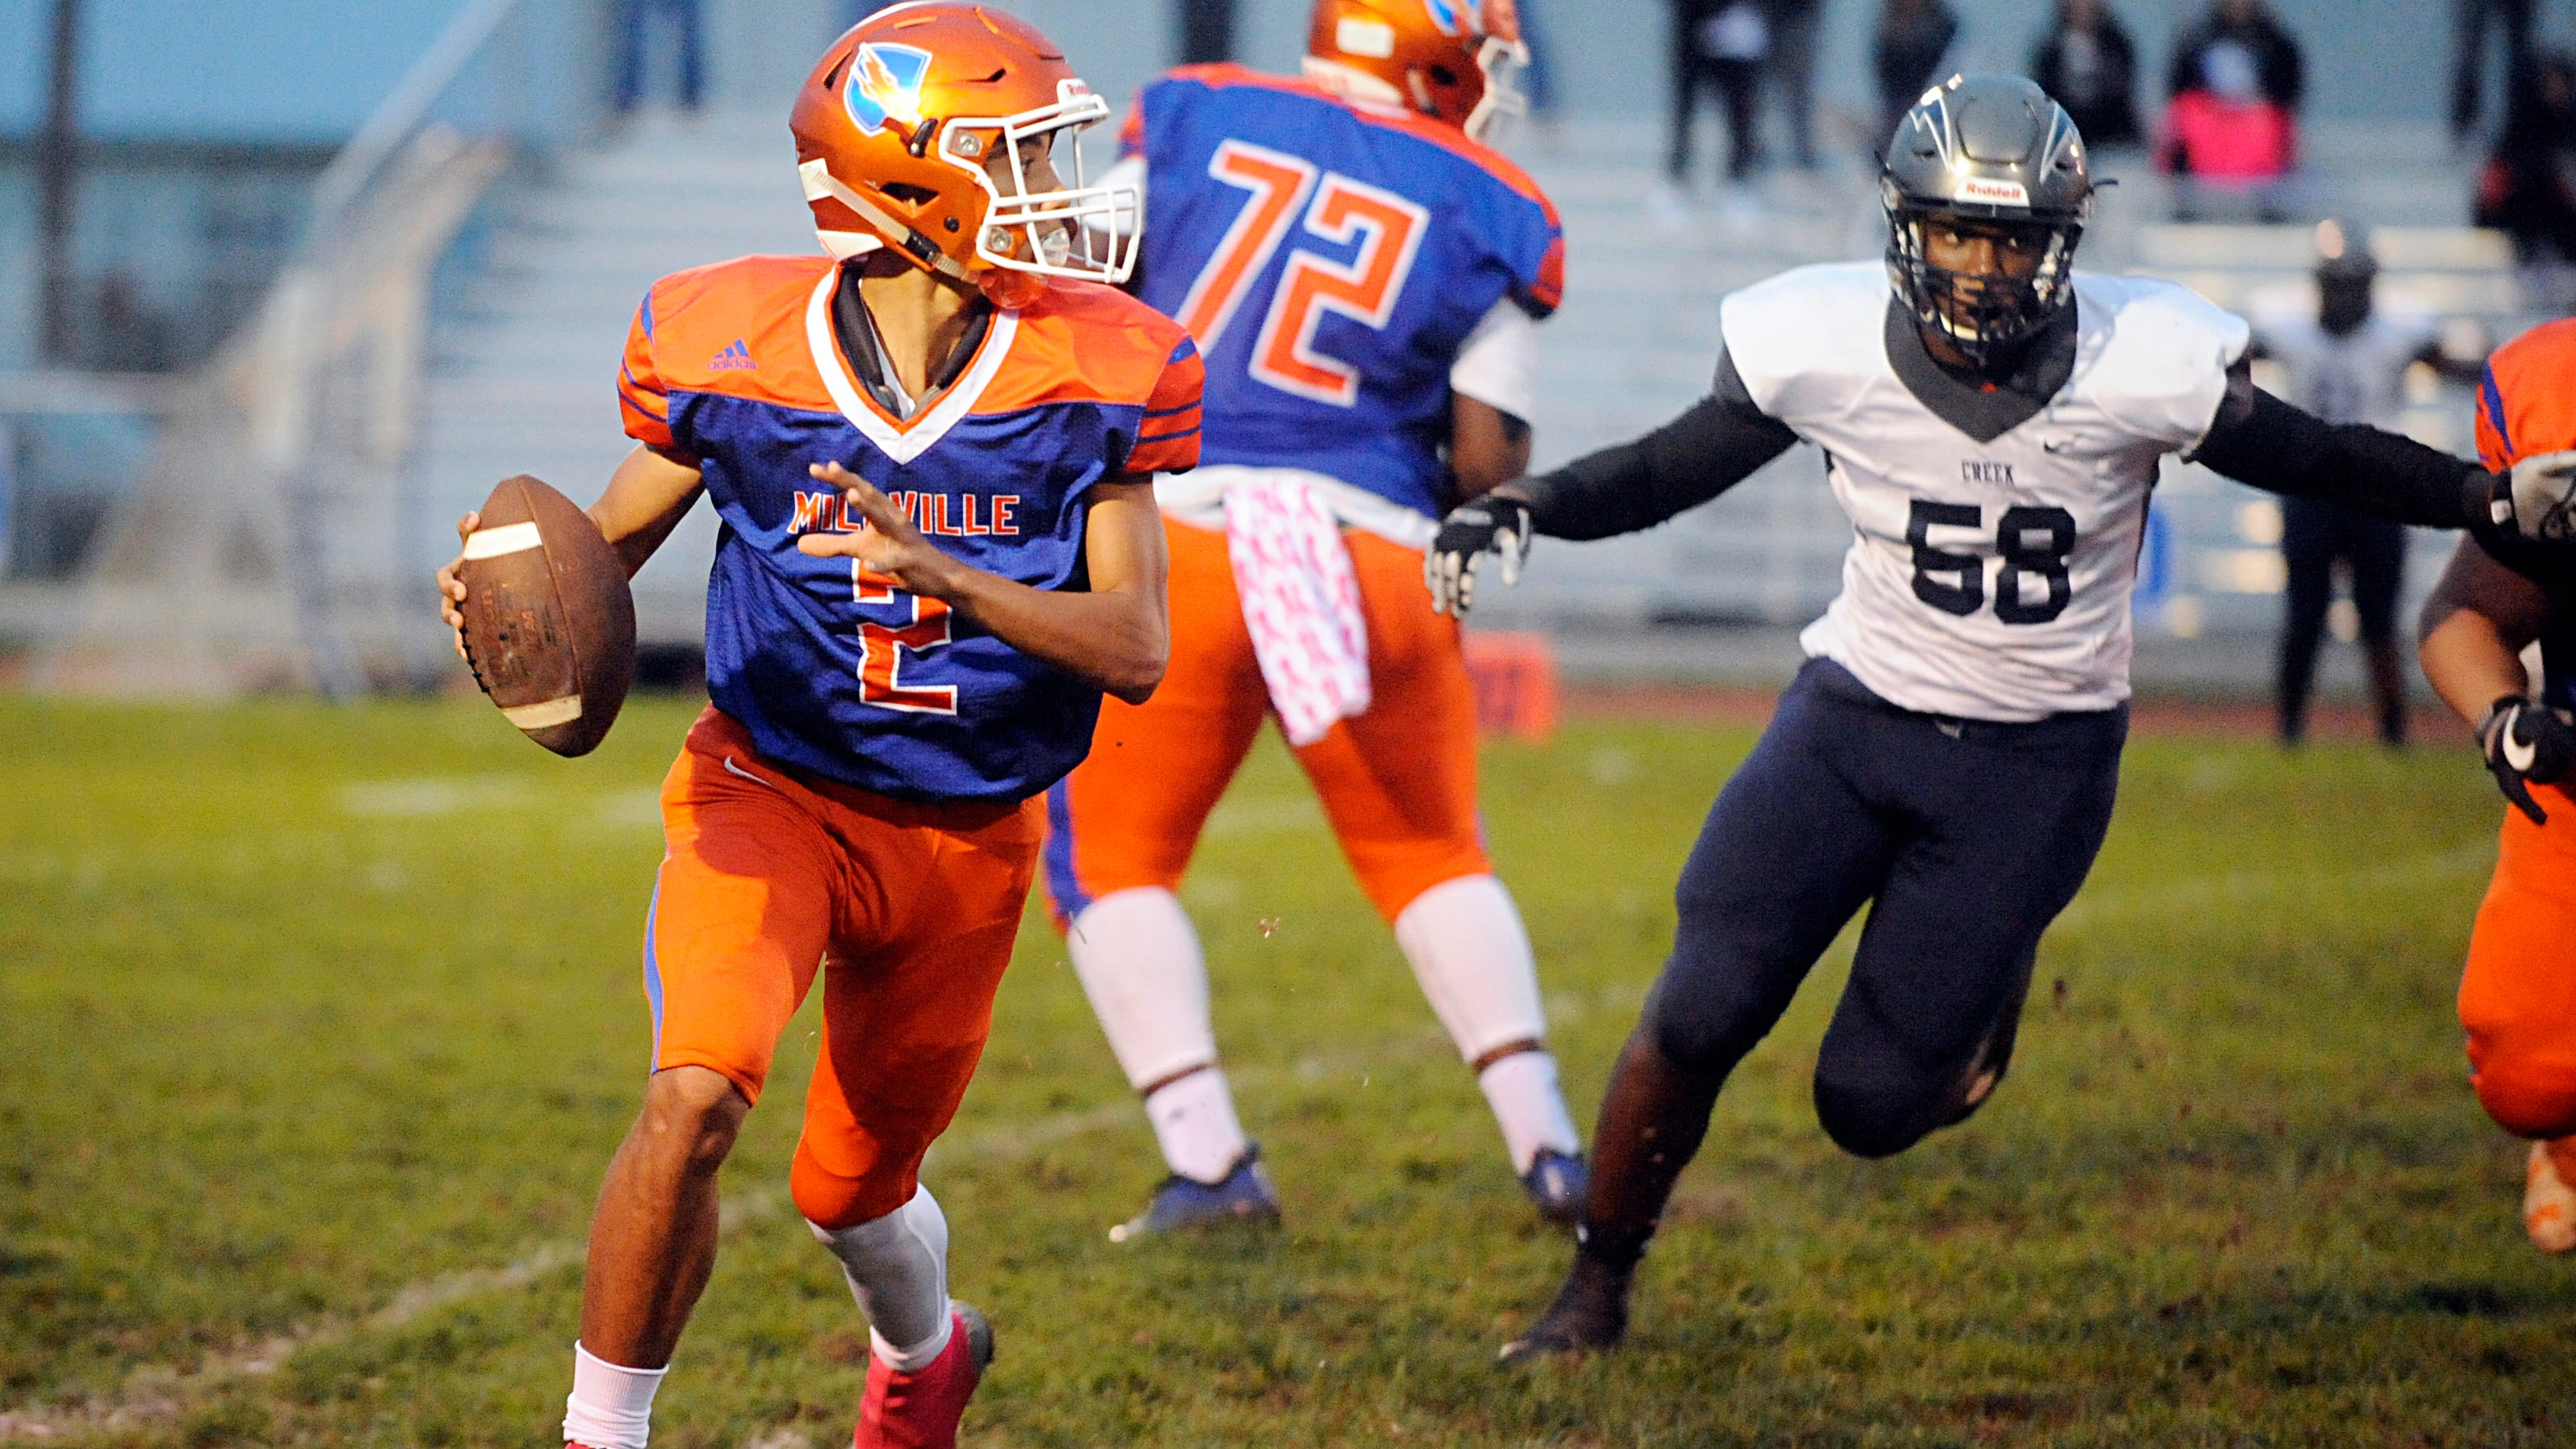 South Jersey Football Millville S Eddie Jamison Is Player Of The Week